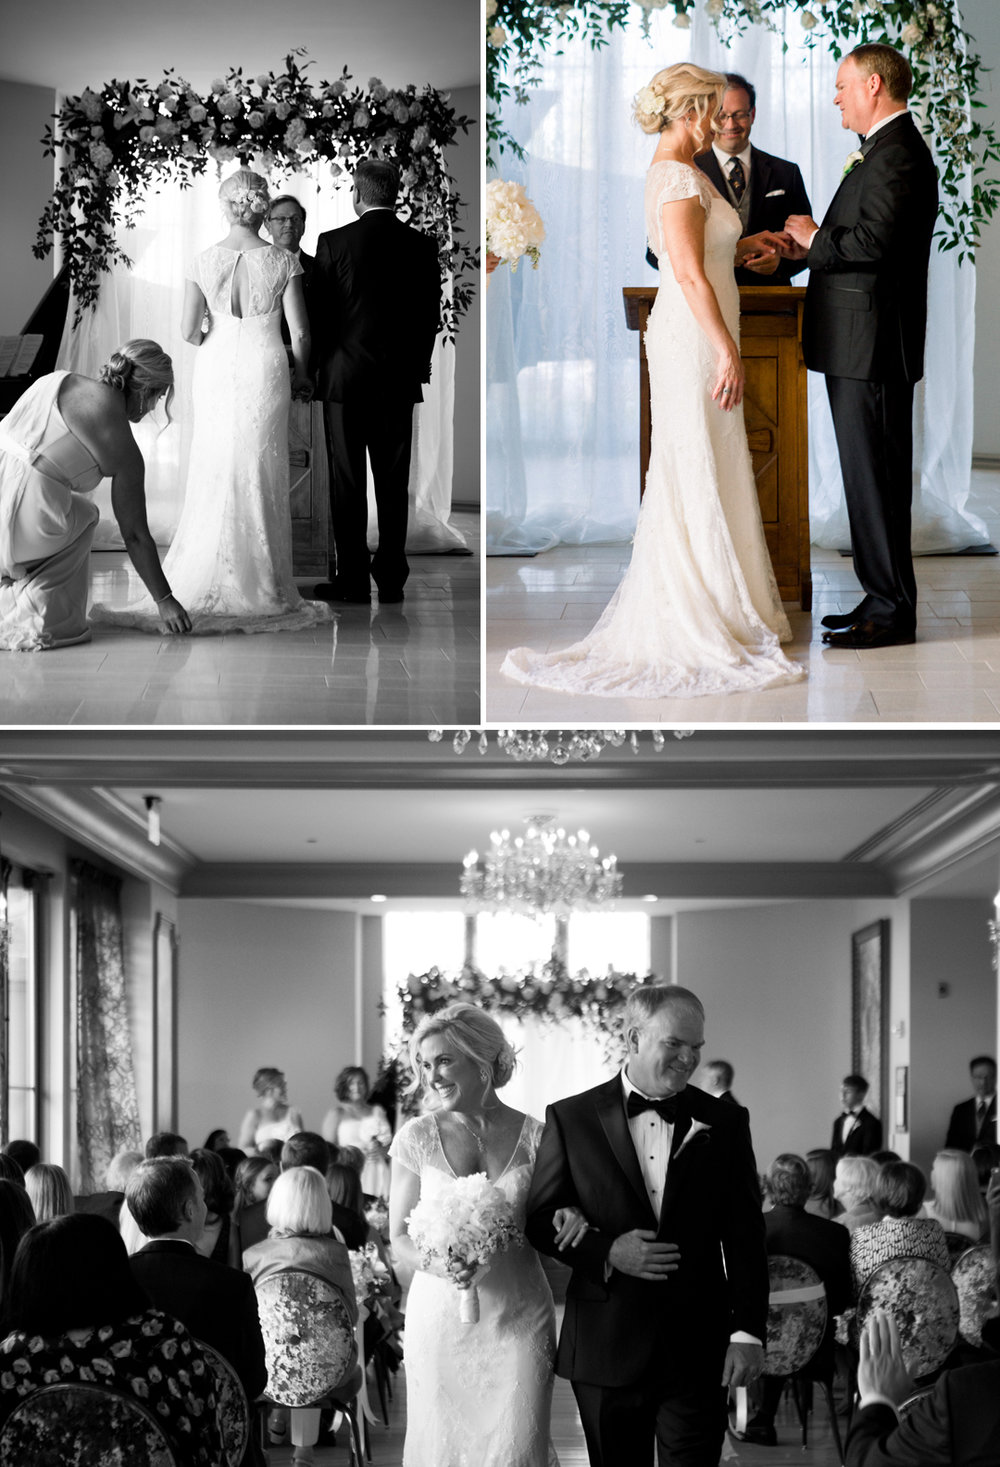 Margie_John_Wedding_Mo_Davis_Photography9.jpg